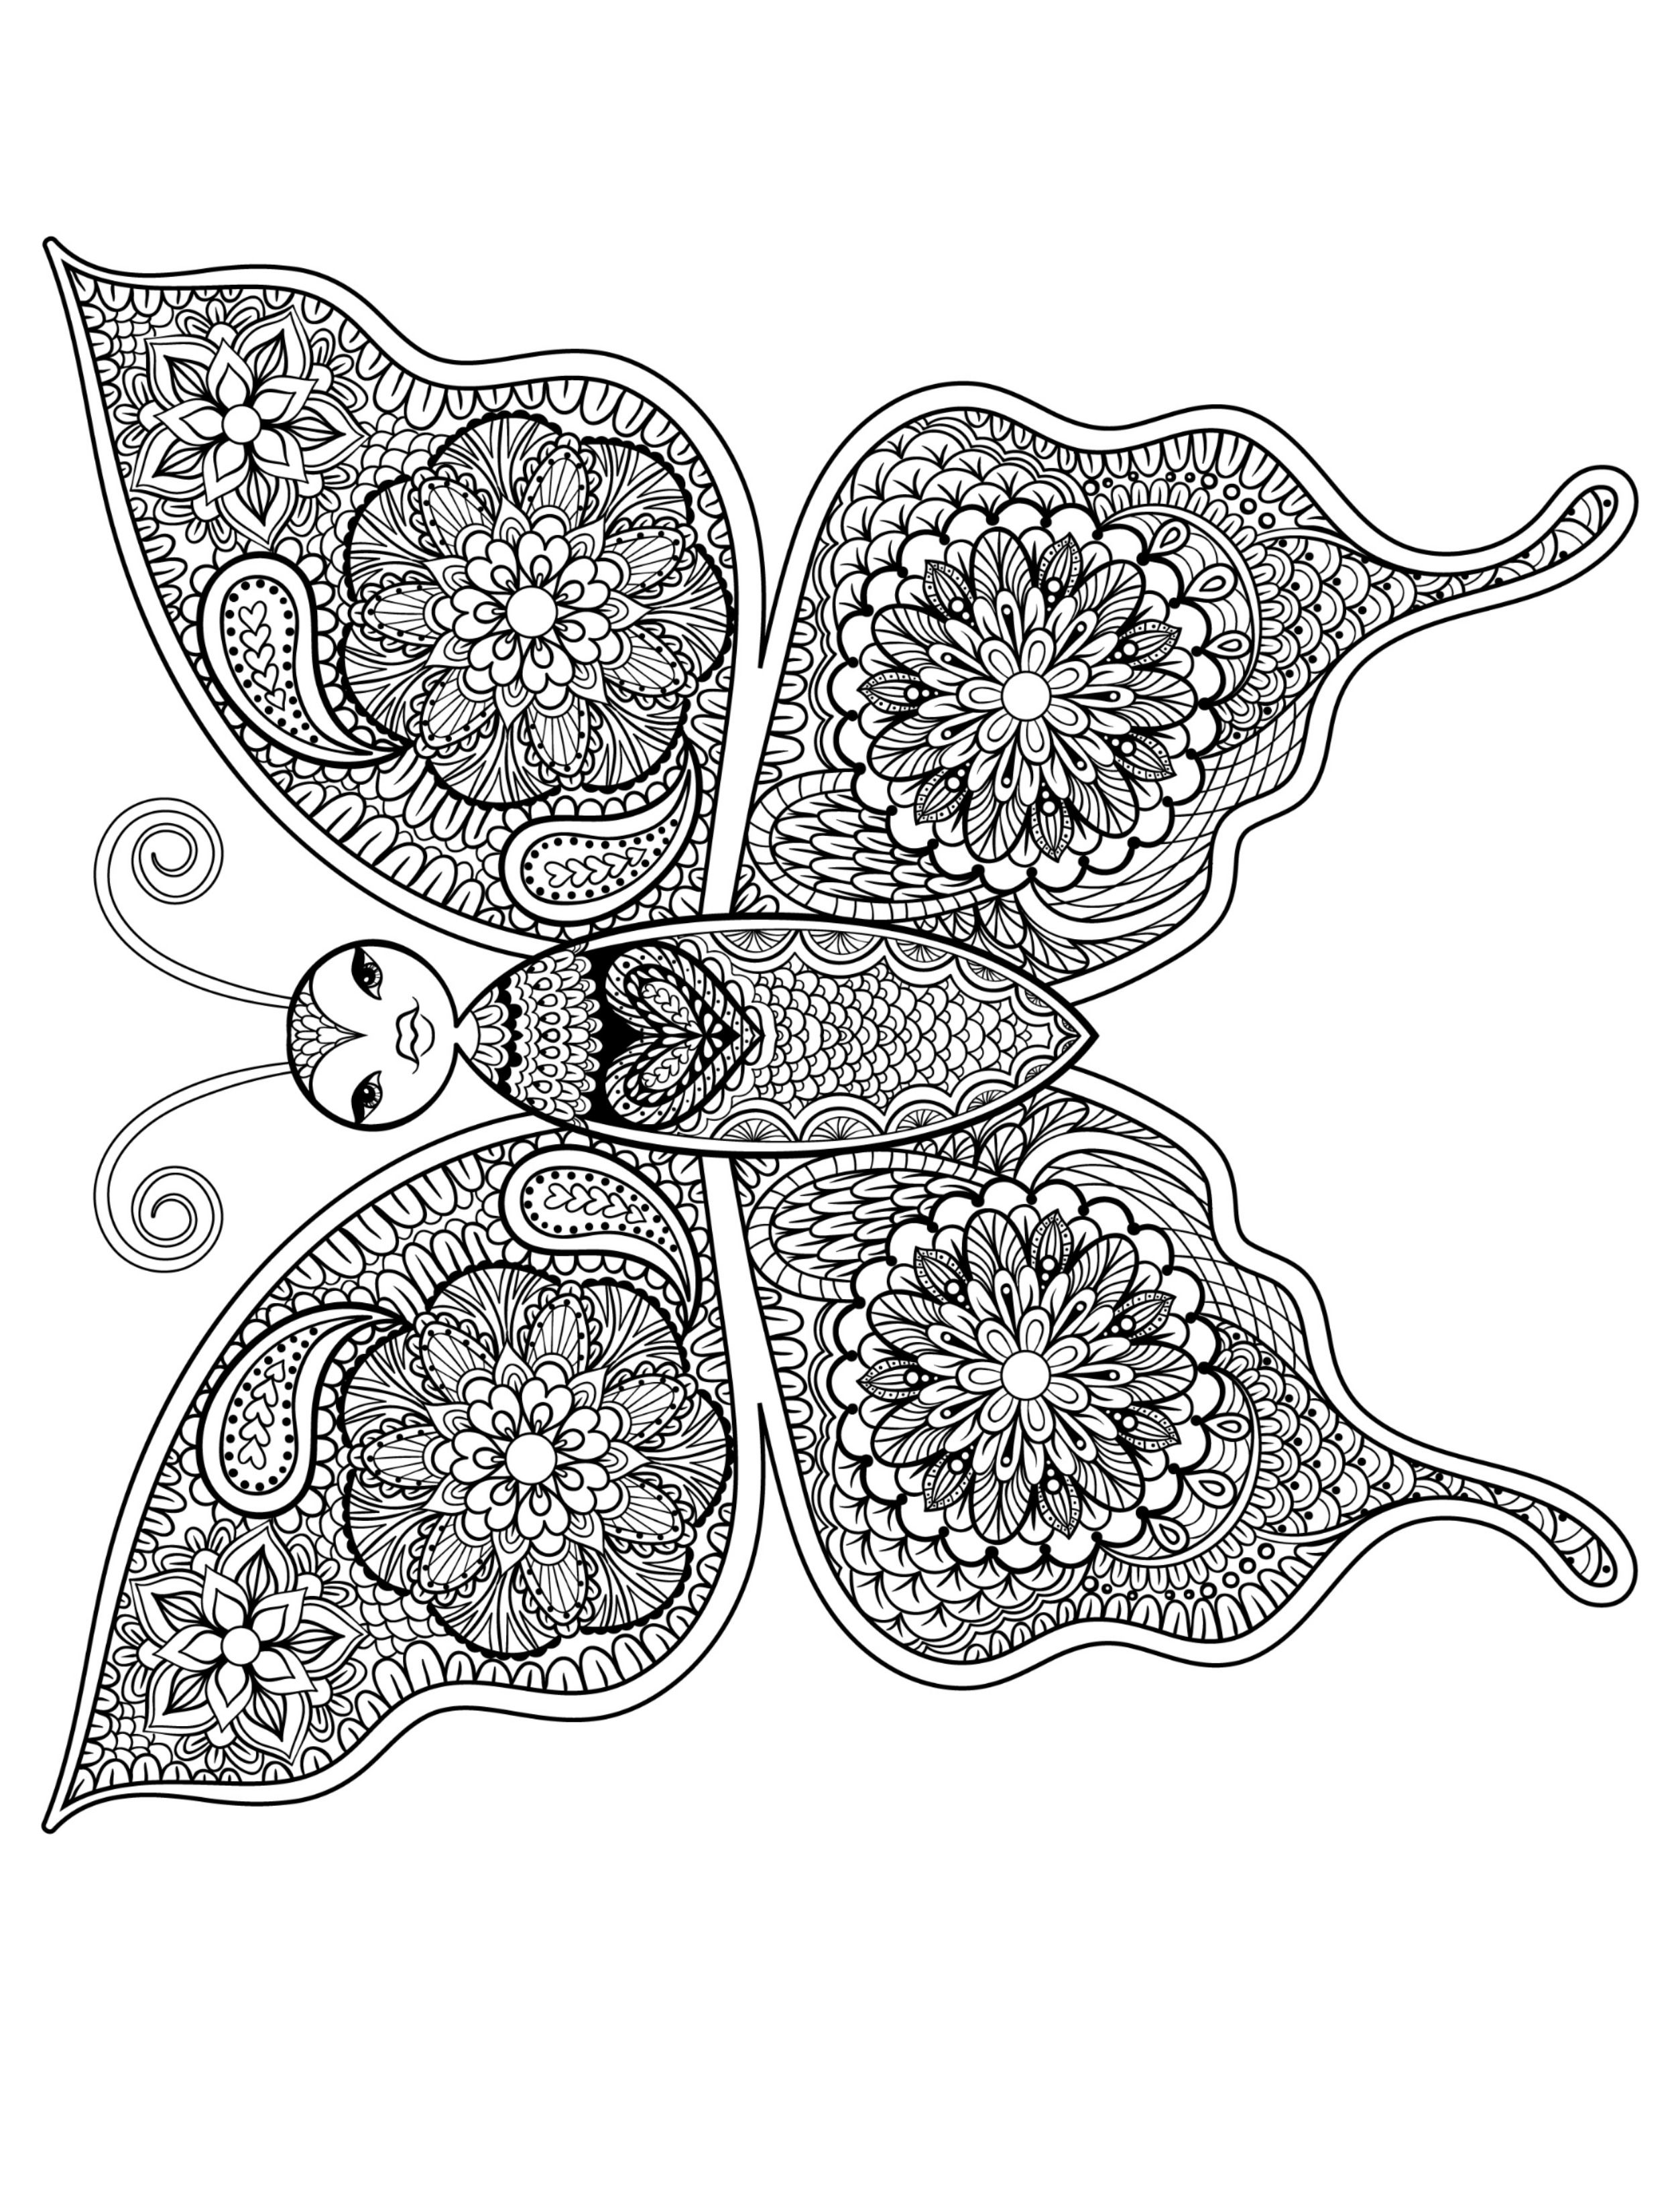 23 Free Printable Insect  Animal Adult Coloring Pages  02